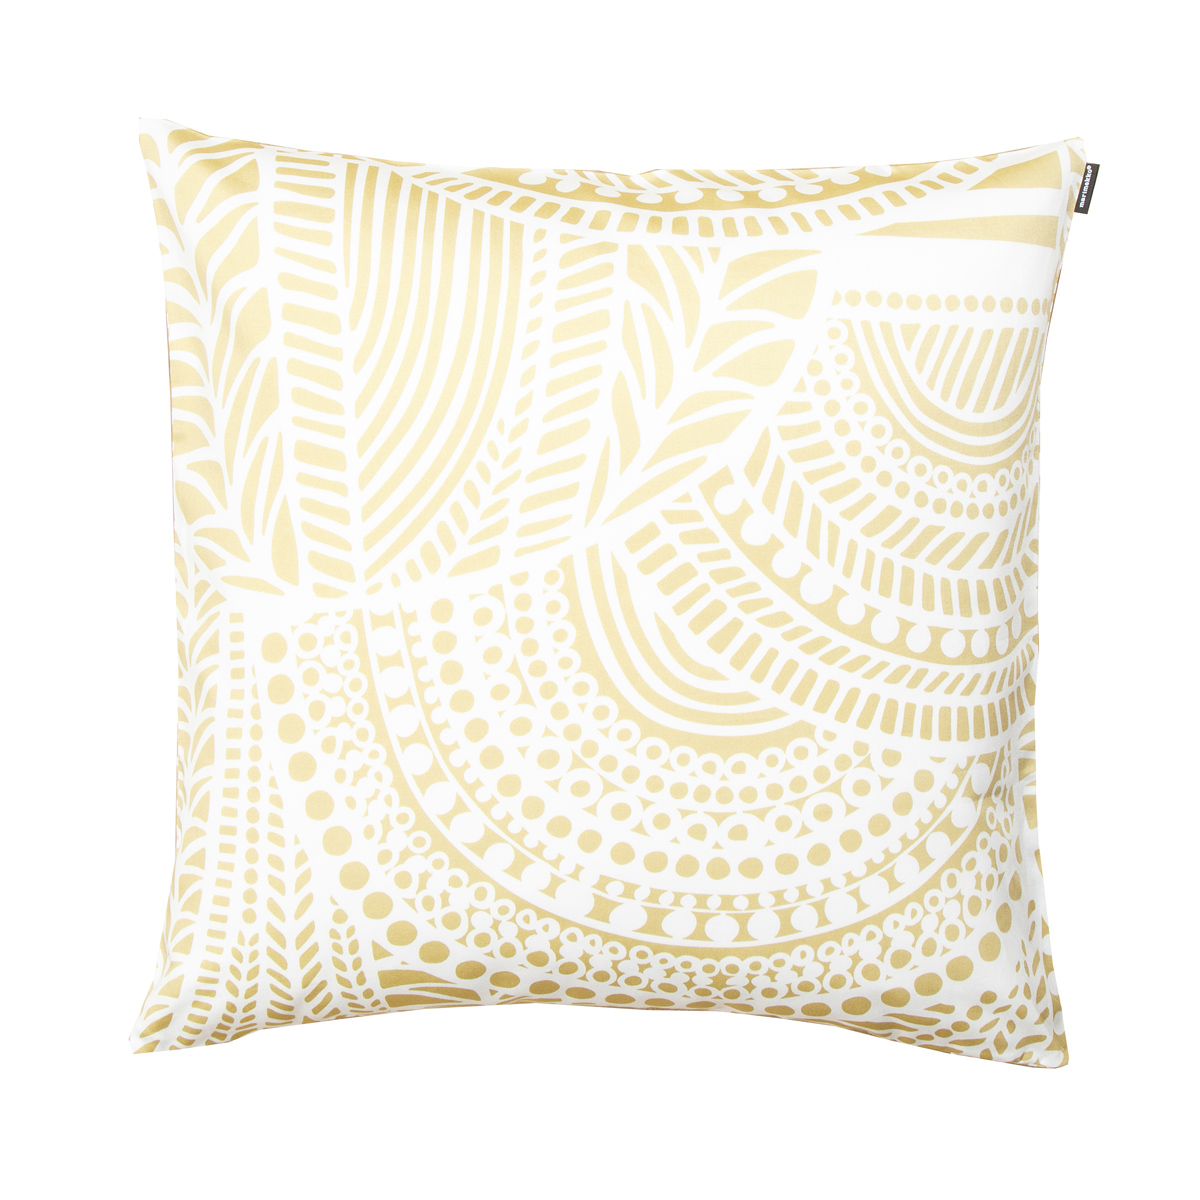 White Gold Throw Pillow : Marimekko Vuorilaakso White / Gold Throw Pillow - Marimekko Fabric & Throw Pillow Sale